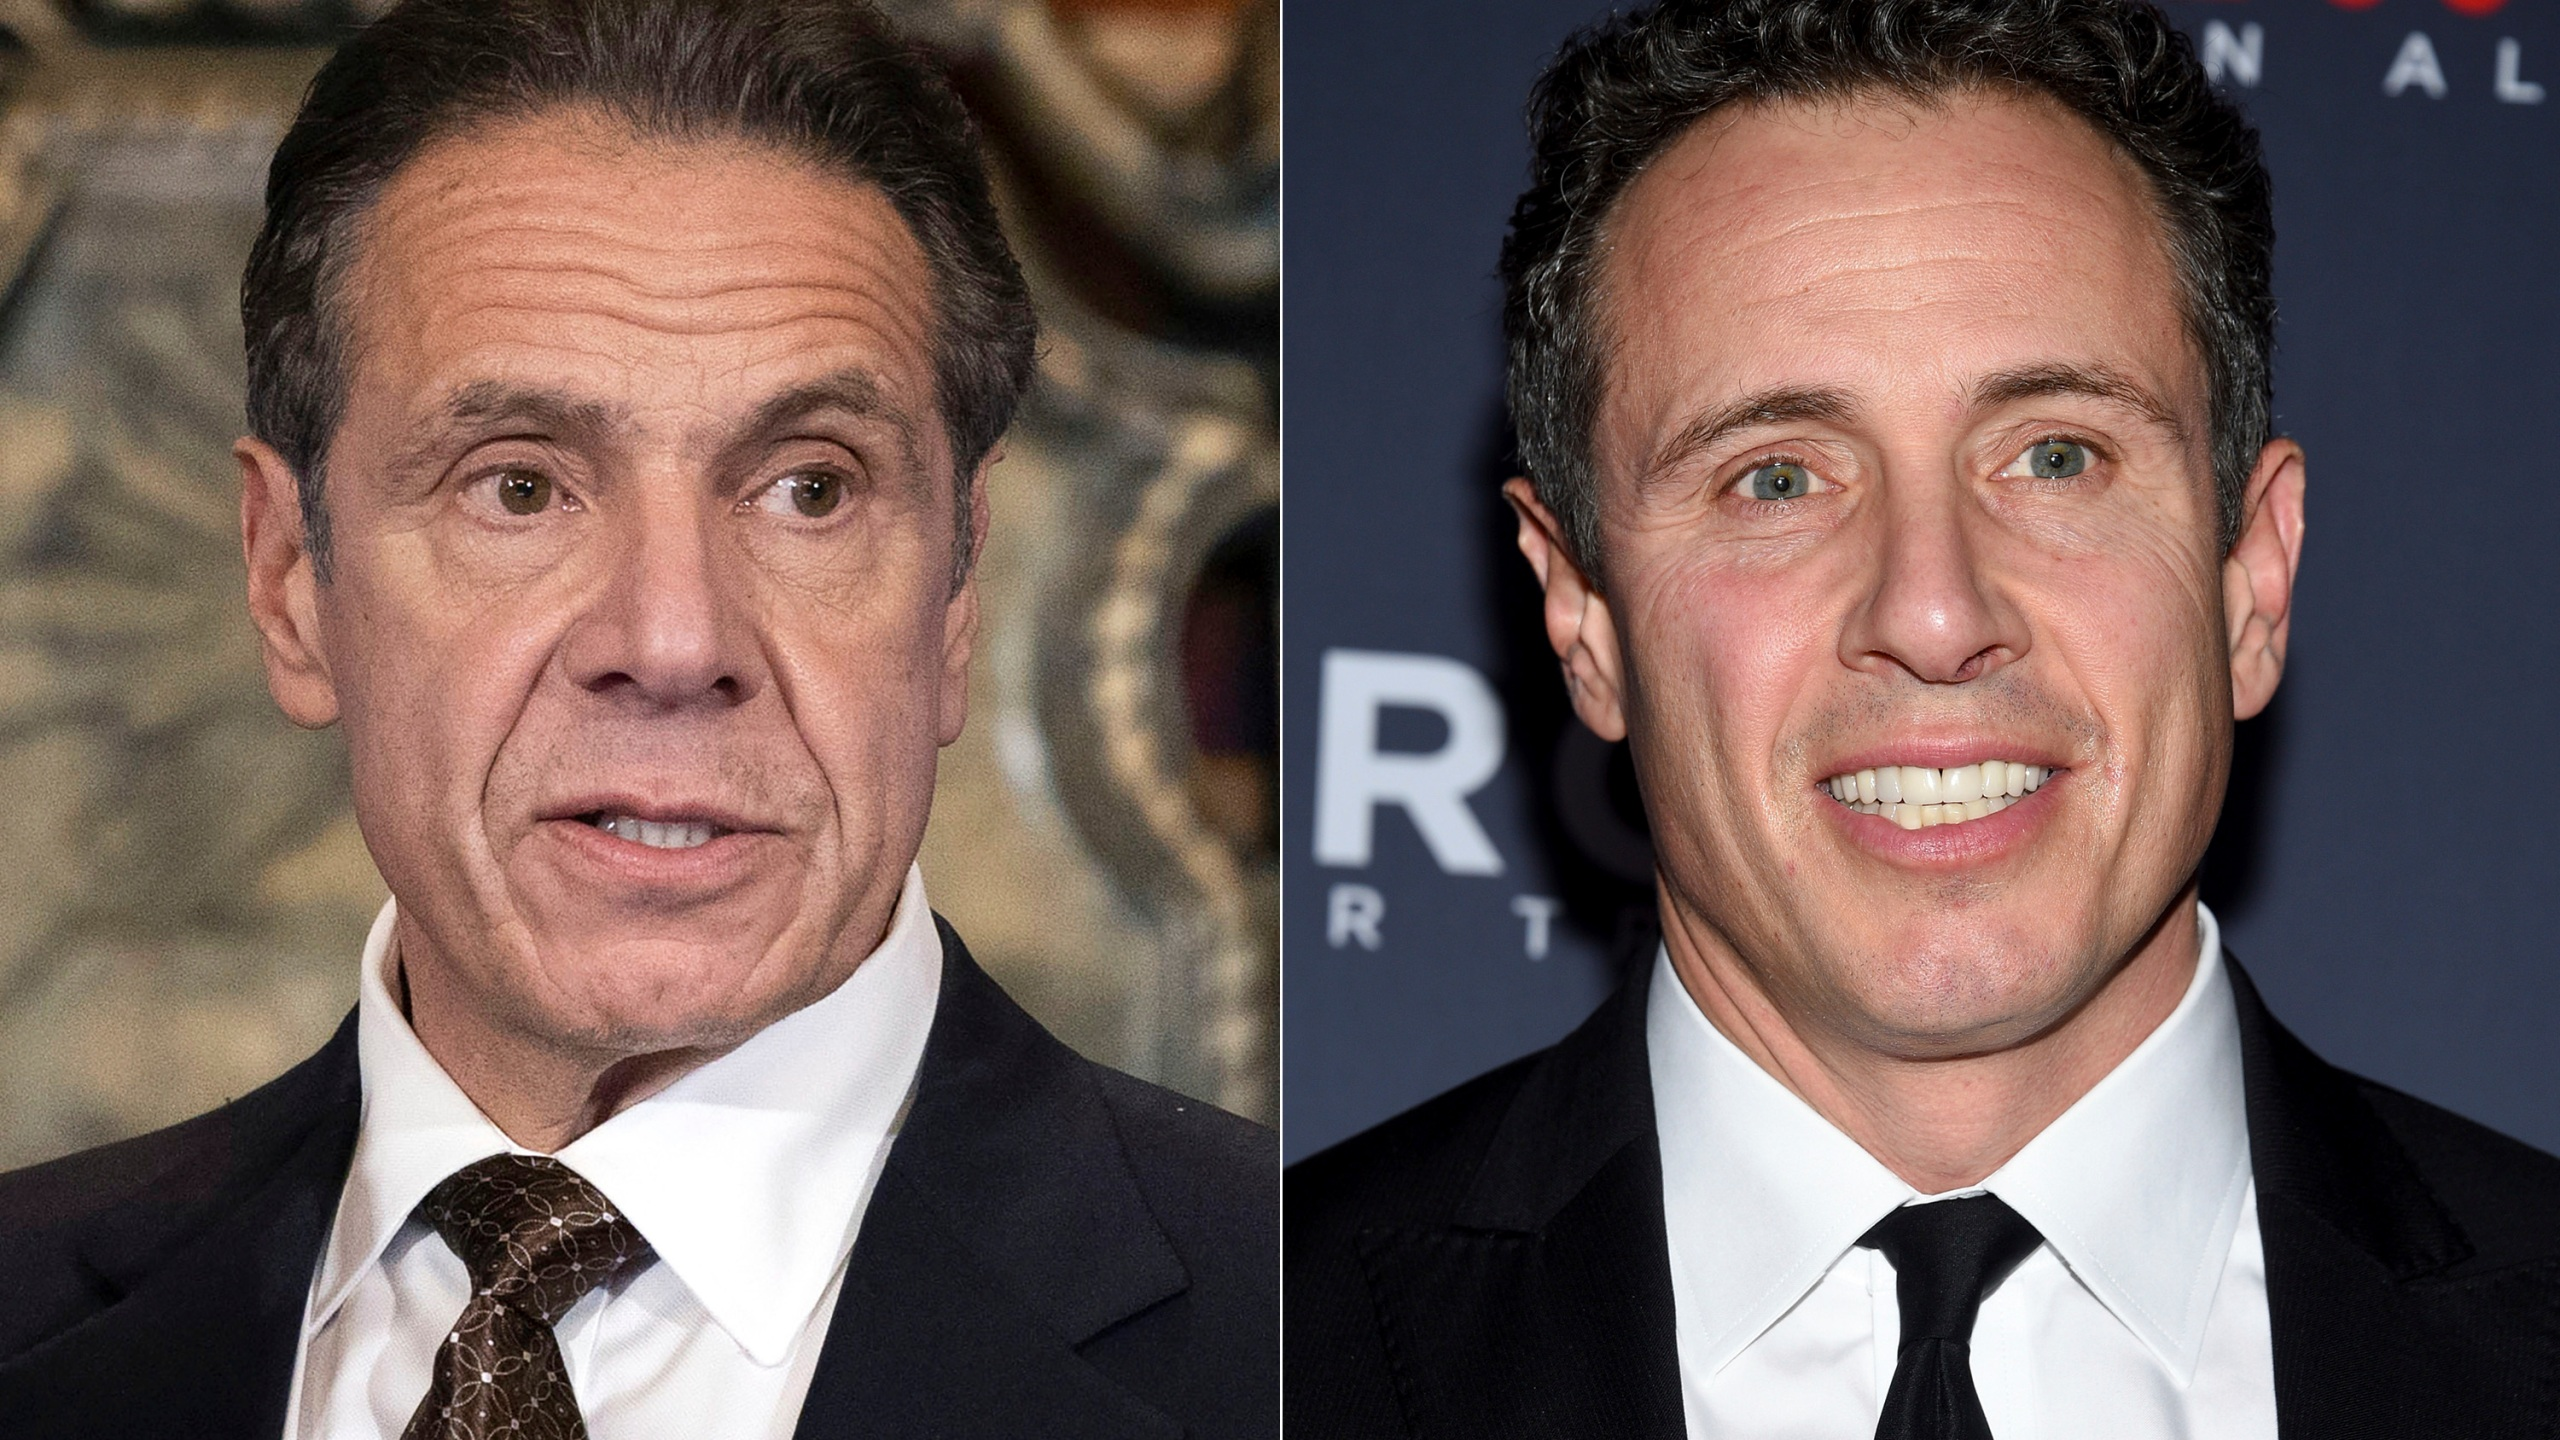 """New York Gov. Andrew M. Cuomo appears during a news conference about the COVID-19at the State Capitol in Albany, N.Y., on Dec. 3, 2020, left, and CNN anchor Chris Cuomo attends the 12th annual CNN Heroes: An All-Star Tribute at the American Museum of Natural History in New York on Dec. 9, 2018. CNN said Thursday, May 20, 2021 it was """"inappropriate"""" for anchor Chris Cuomo to have been involved in phone calls with the staff of his brother, New York Gov. Andrew Cuomo, where strategies on how the governor should respond to sexual harassment allegations were allegedly discussed.(Mike Groll/Office of Governor of Andrew M. Cuomo via AP, left, and Evan Agostini/Invision/AP)"""